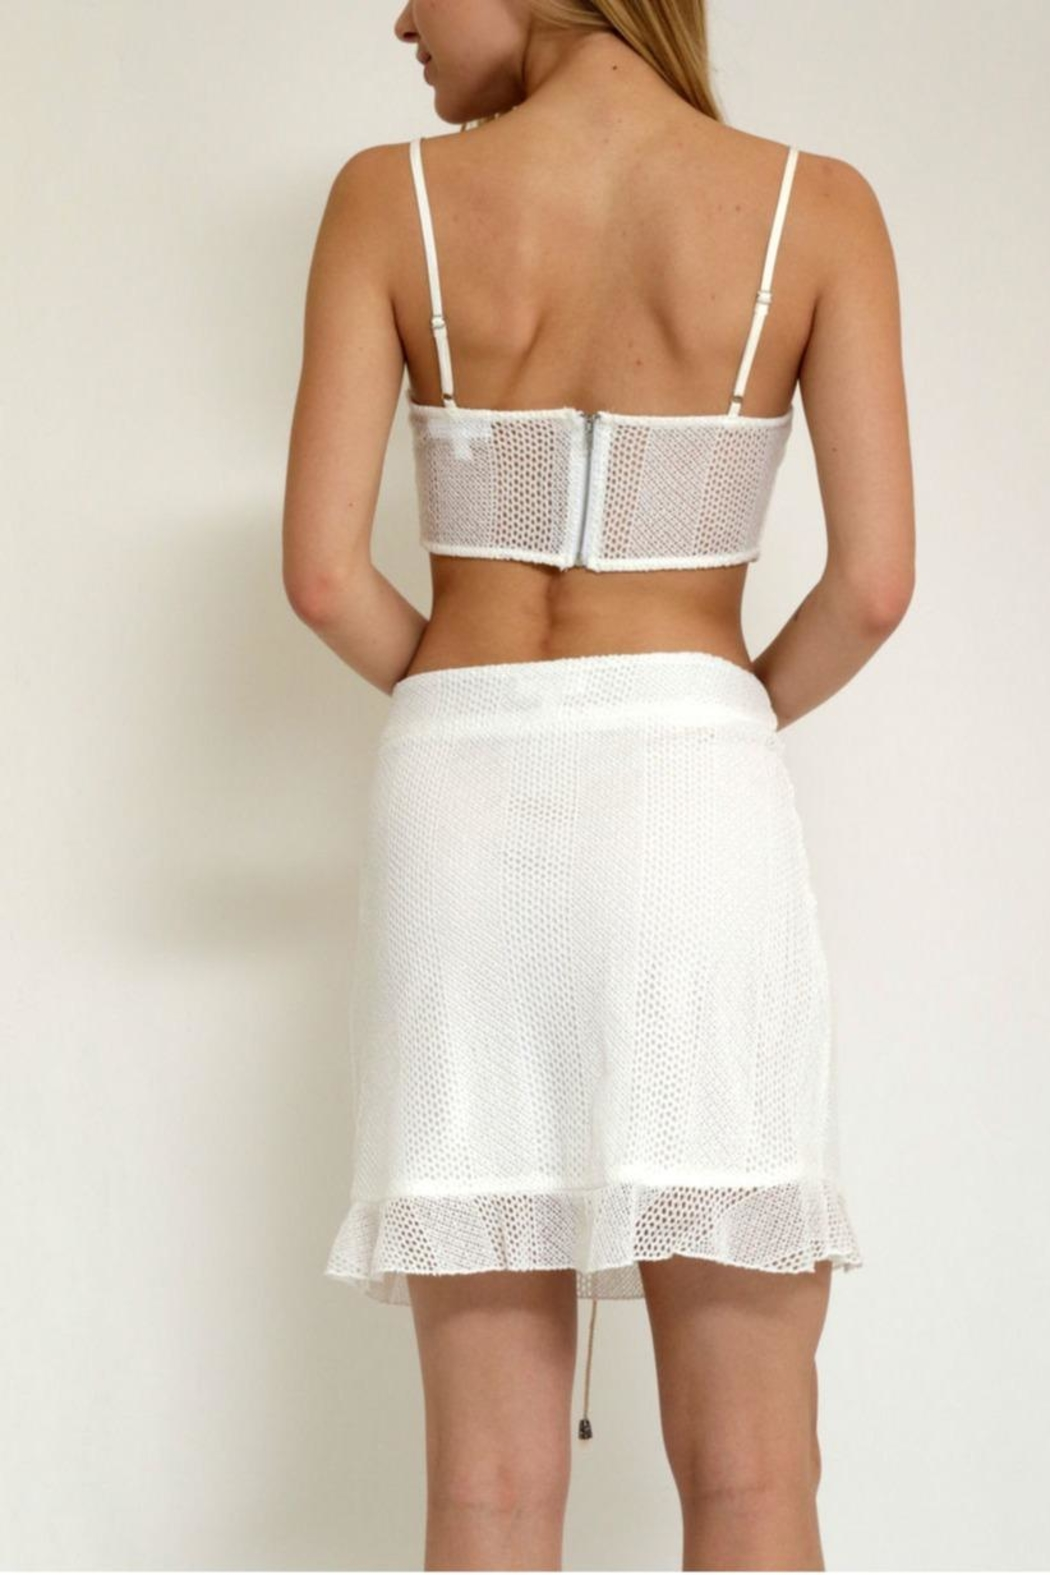 in the Beginning Casualmesh  Set,top&Skirt - Front Full Image